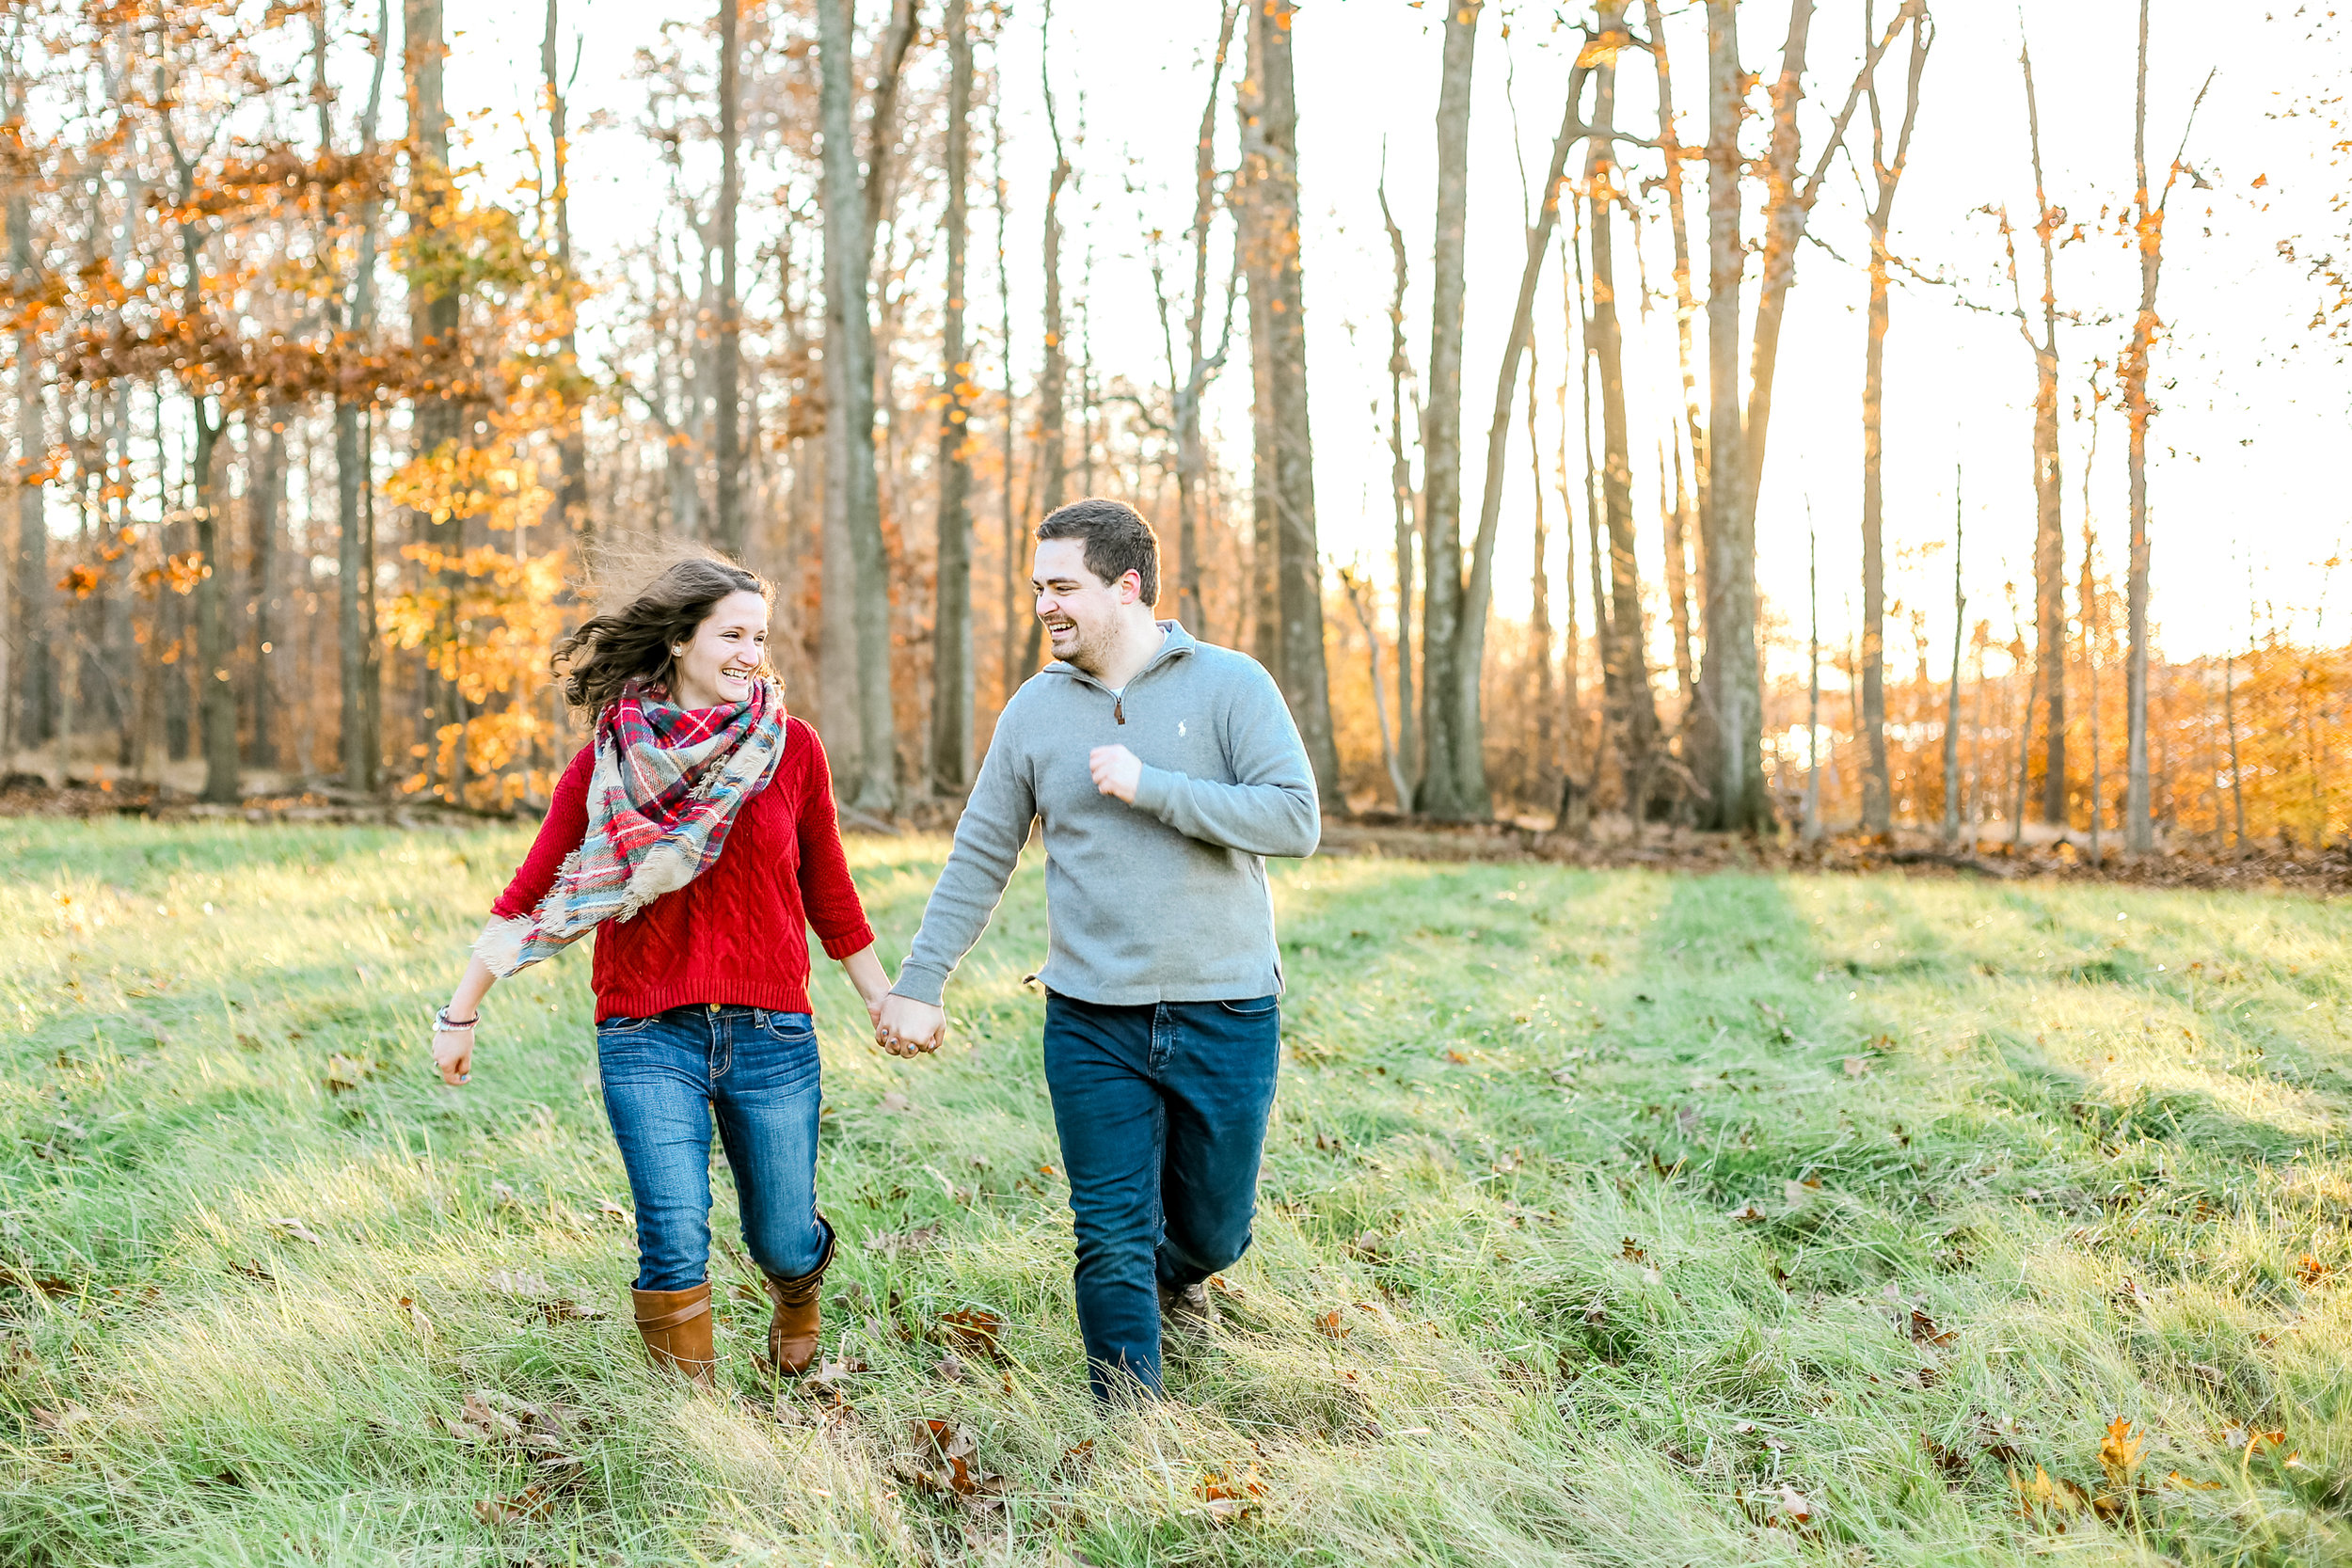 Bucks county Peace Valley Park Doylestown Lehigh Valley fall windy engagement session wedding and lifestyle photographer Lytle Photo Co (75 of 109).jpg